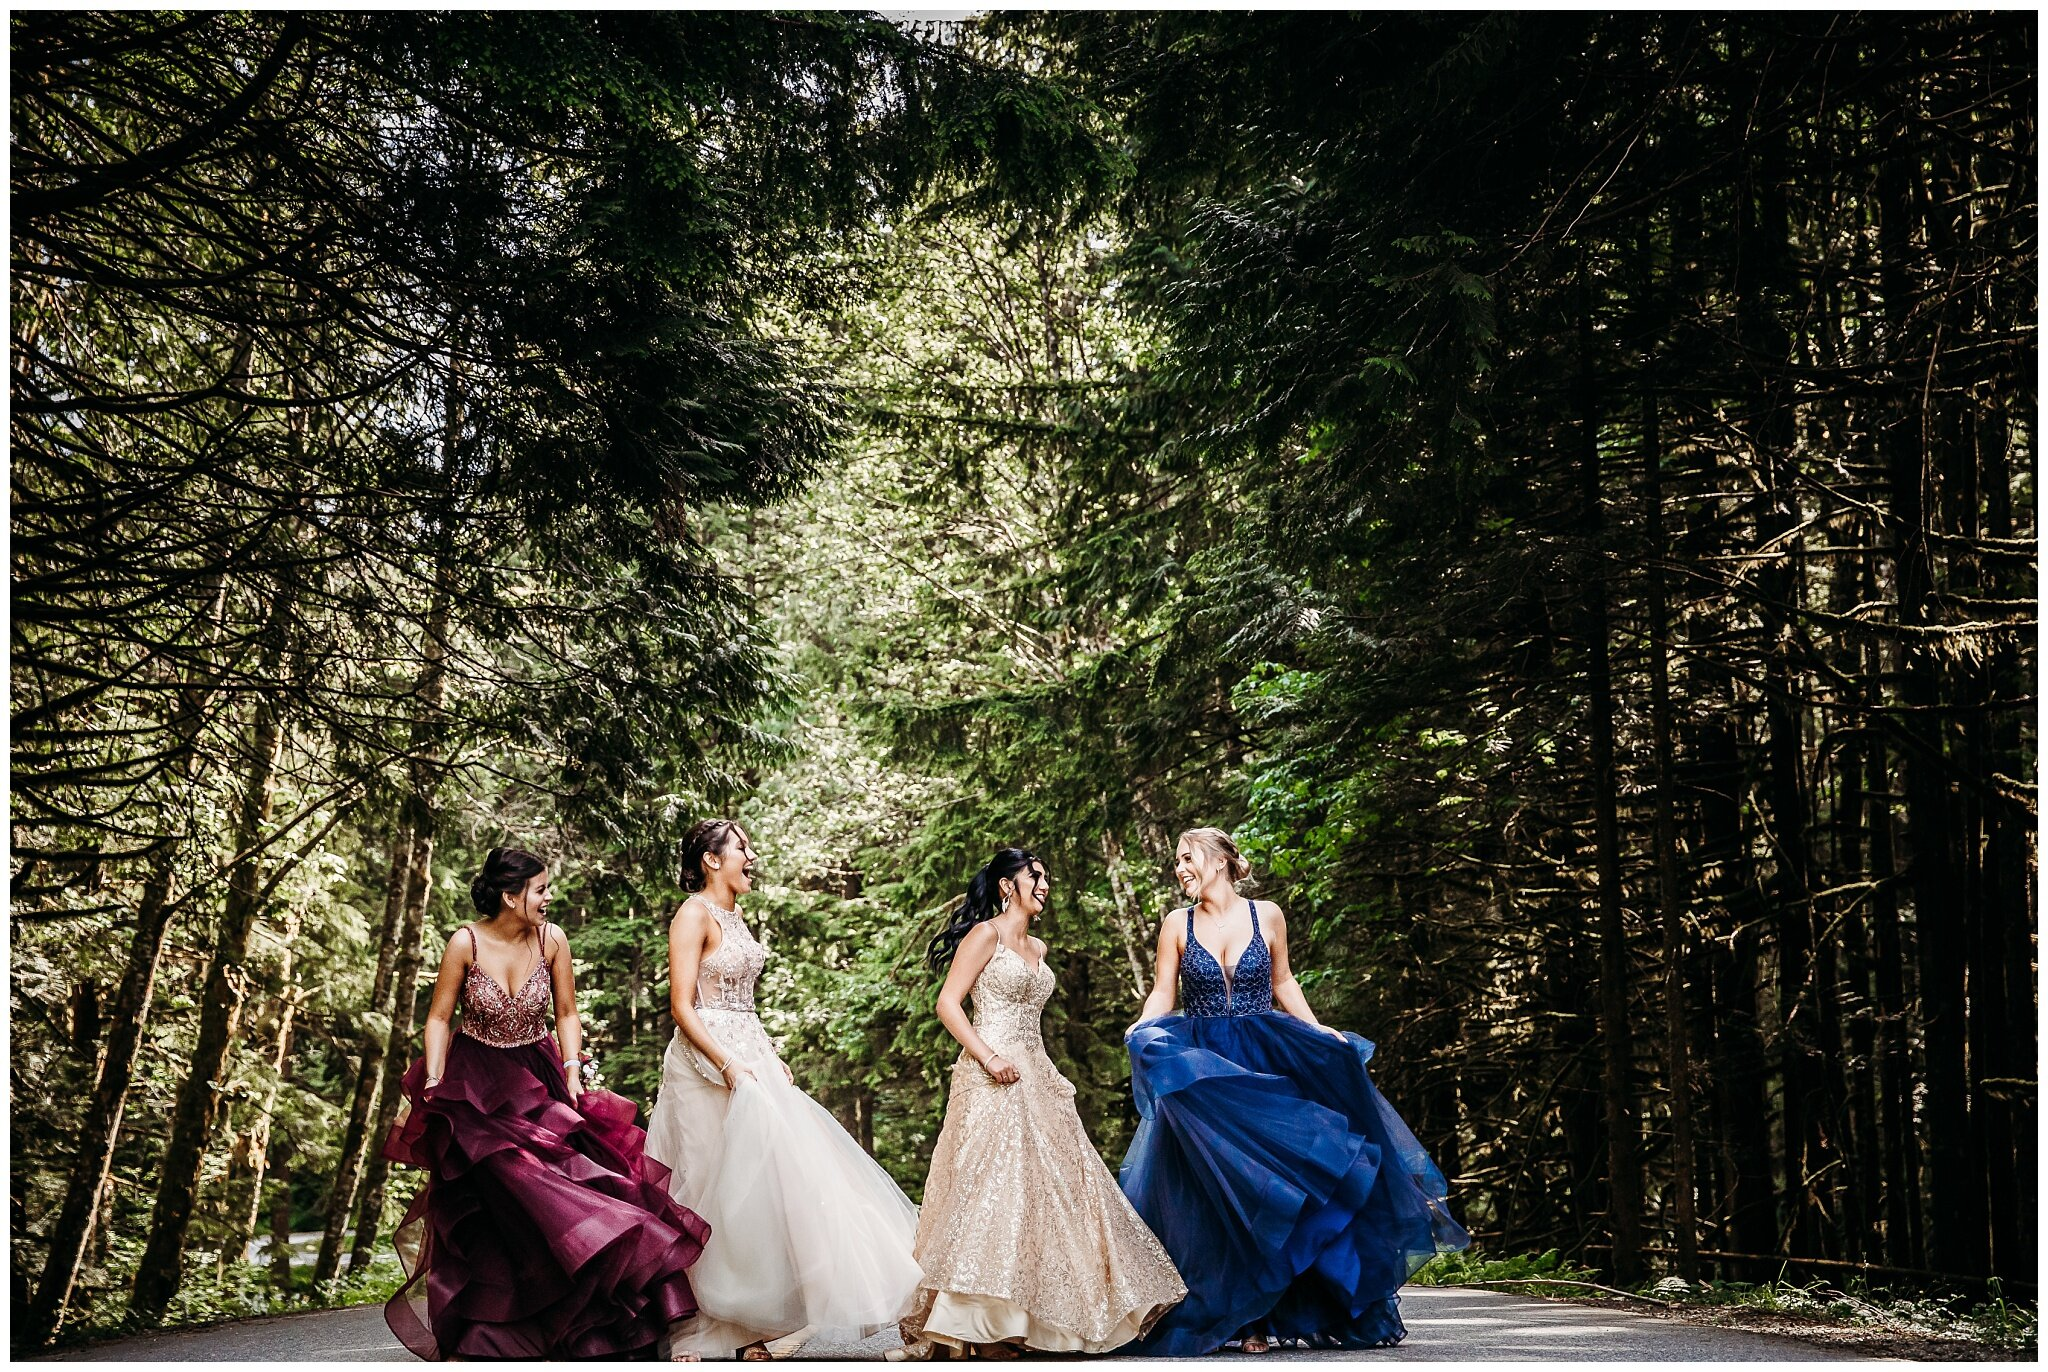 Abbotsford Highschool Prom Graduation Photographer 2019 Abbotsford fun bright_0026.jpg